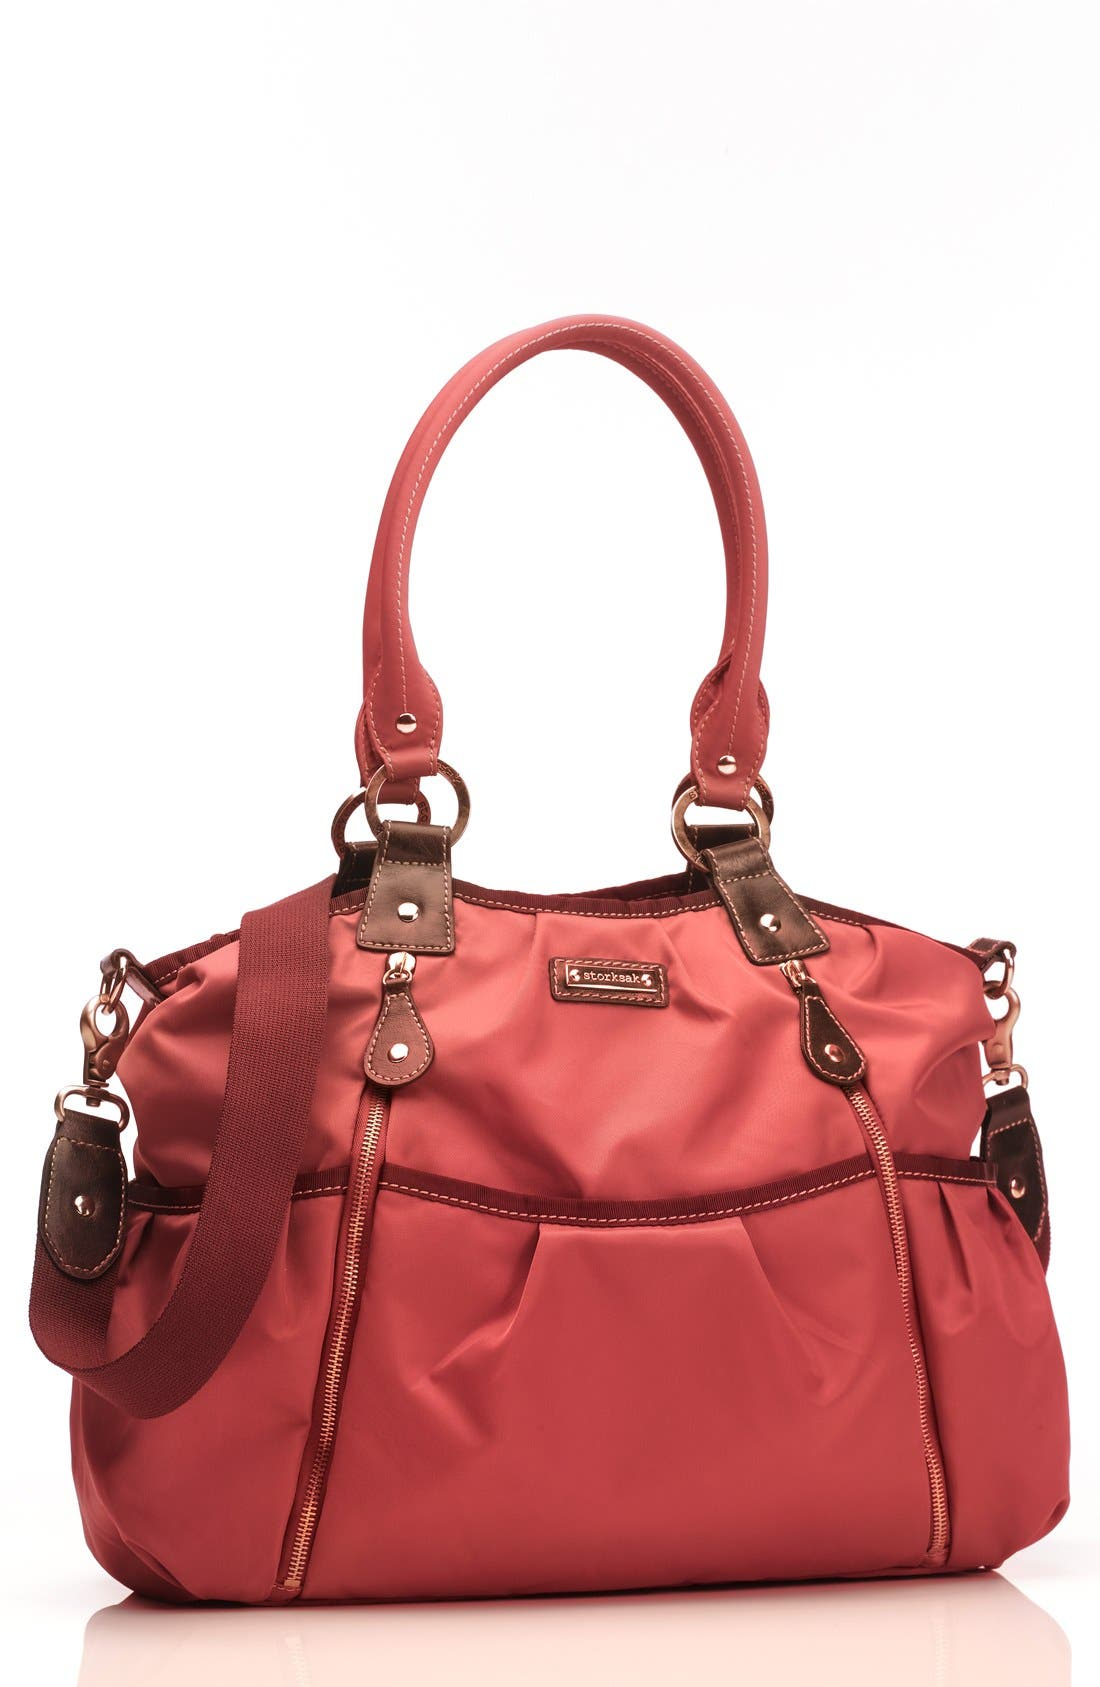 Alternate Image 1 Selected - Storksak 'Olivia' Nylon Diaper Bag